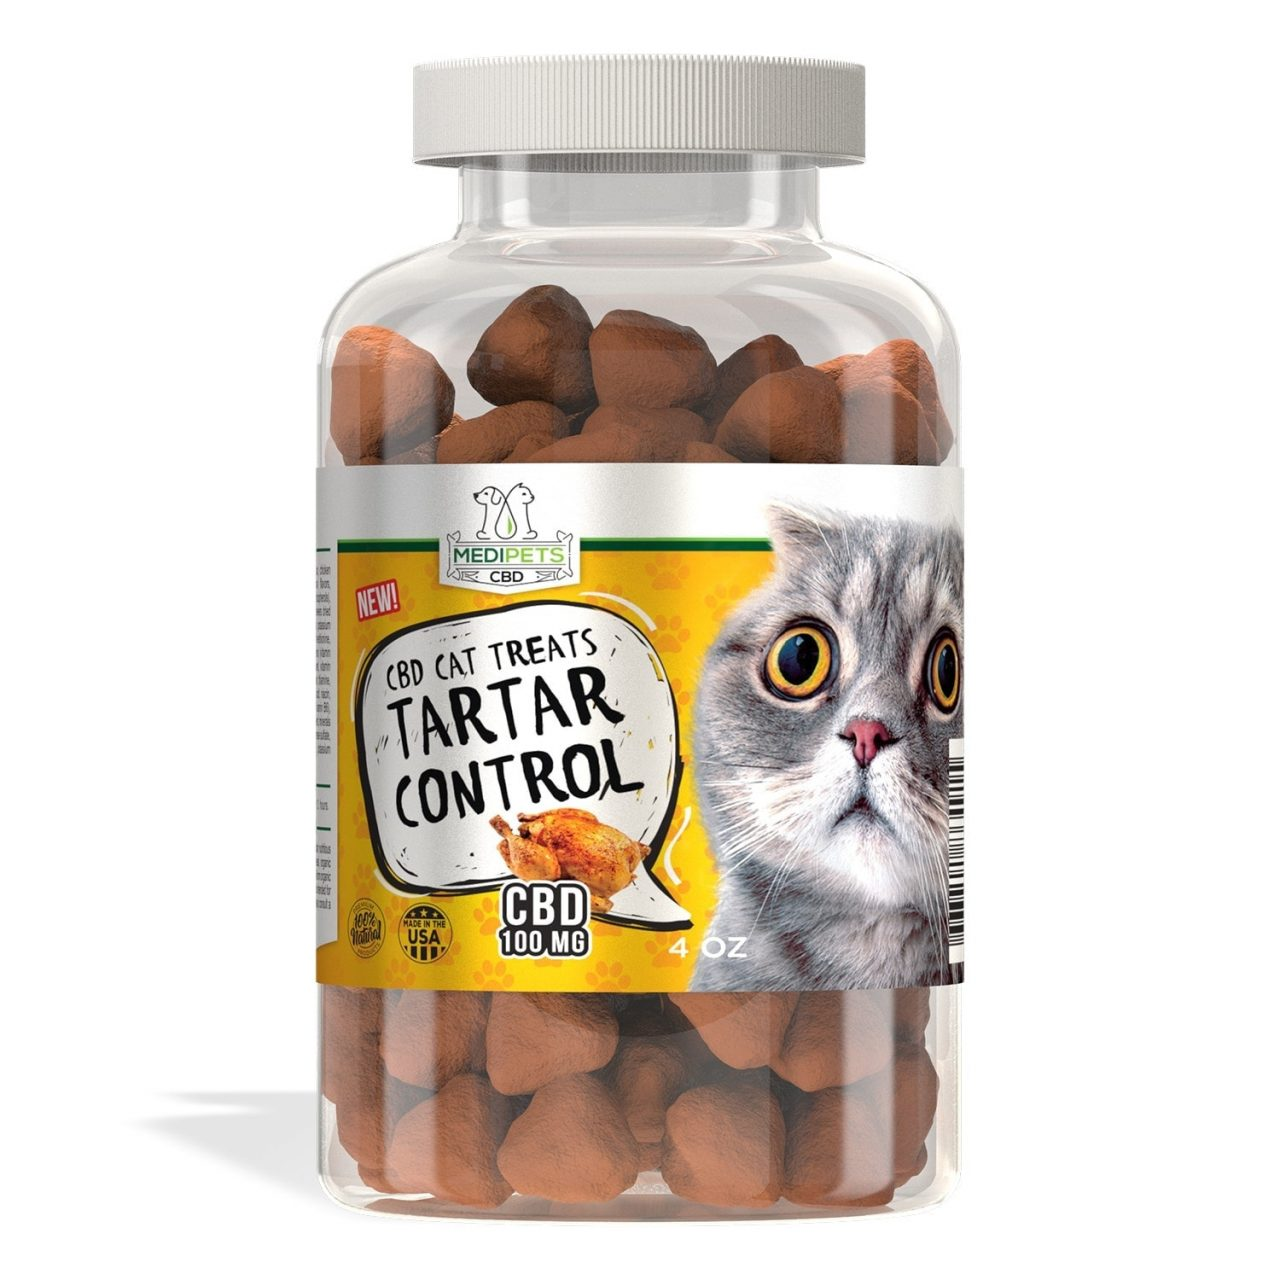 medipets-cbd-cbd-cat-treats-cat-cafe-tartar-control-150g-100mg-of-cbd